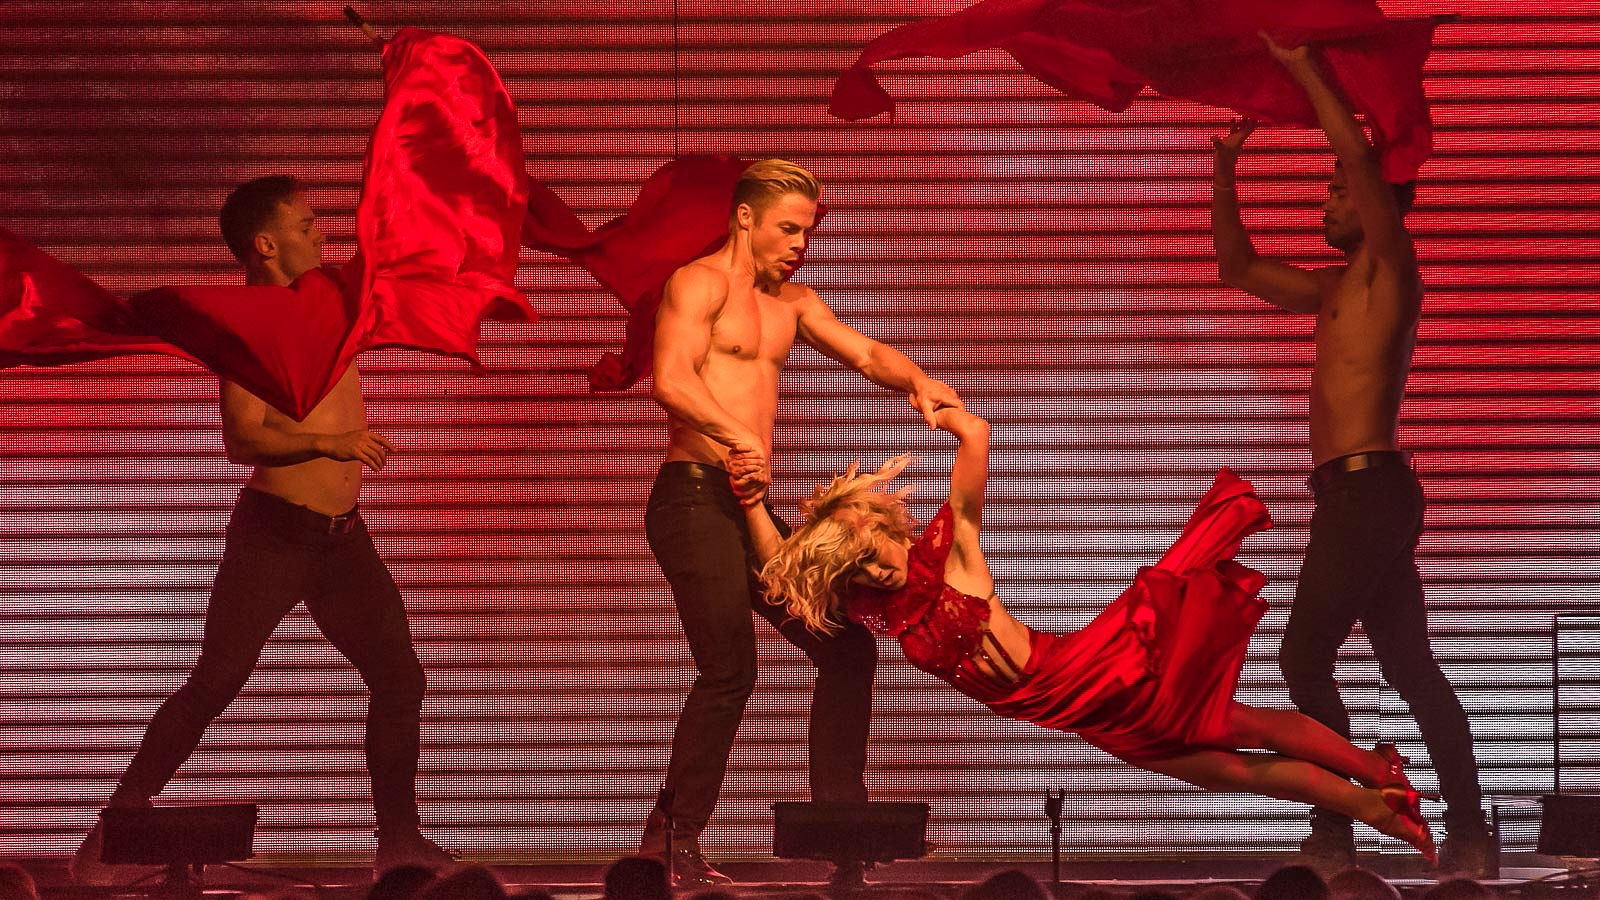 'Dancing With the Stars' greats Julianne and Derek Hough entertained at the Seneca Niagara Events Center. (Don Nieman/Special to The News)